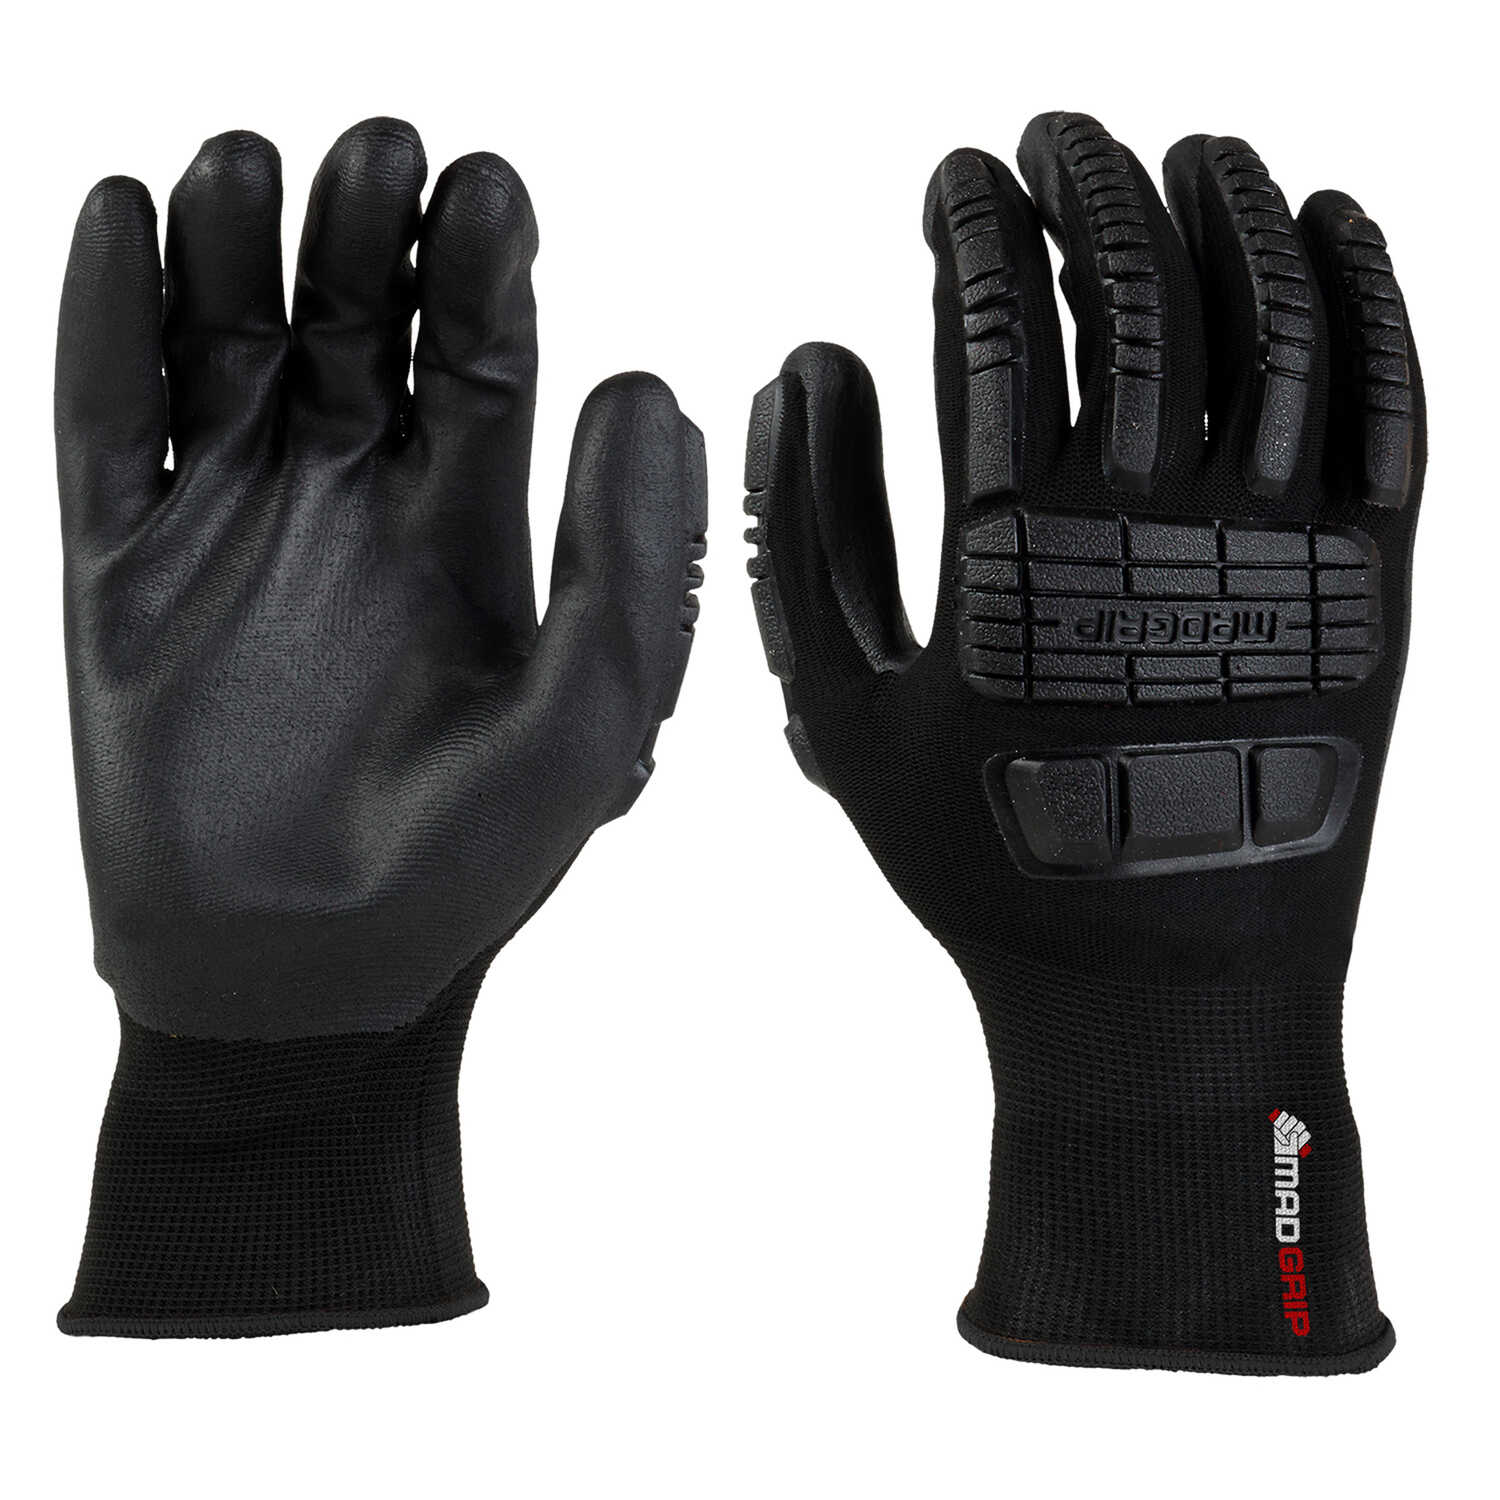 MadGrip  Ergo Impact  Unisex  Polyurethane  Coated  Work Gloves  Black  M